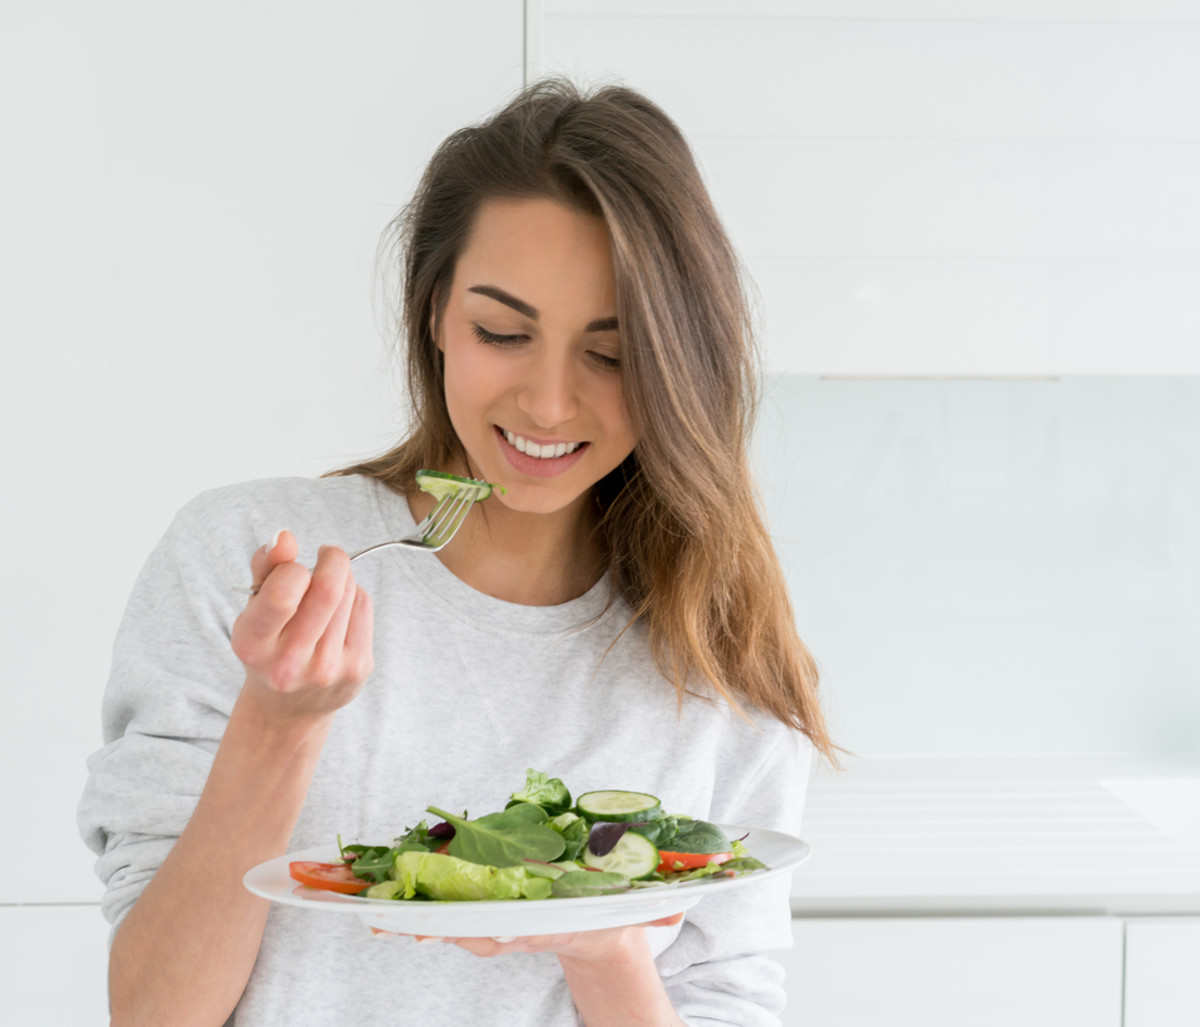 Going Plant-Based is the New Prescription, According to Nation's Leading Physicians